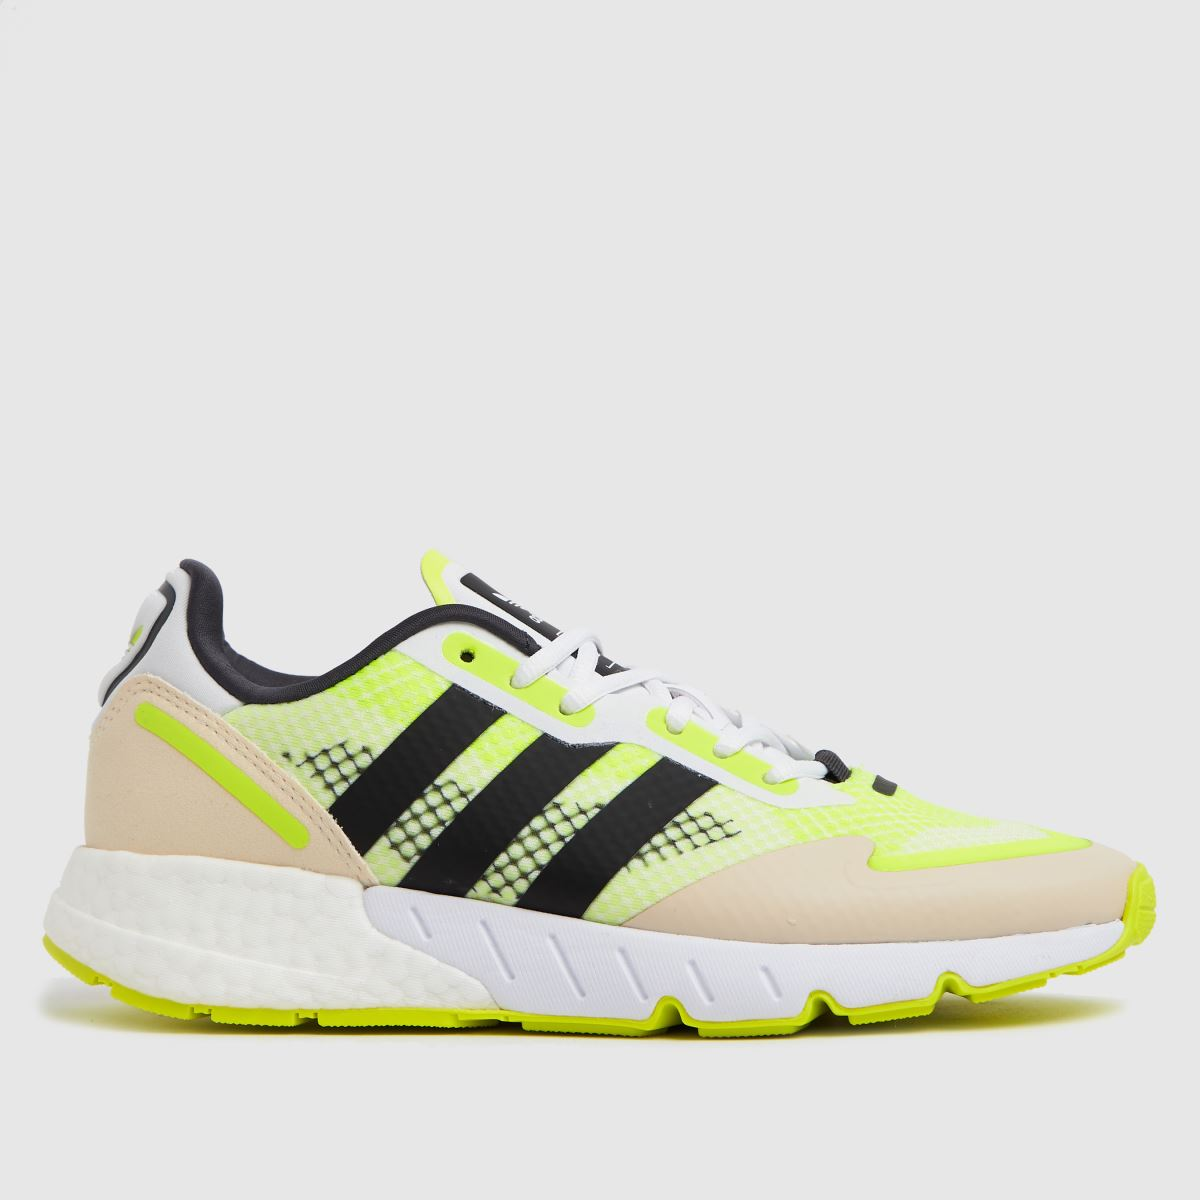 Adidas White & Yellow Zx 1k Boost Trainers